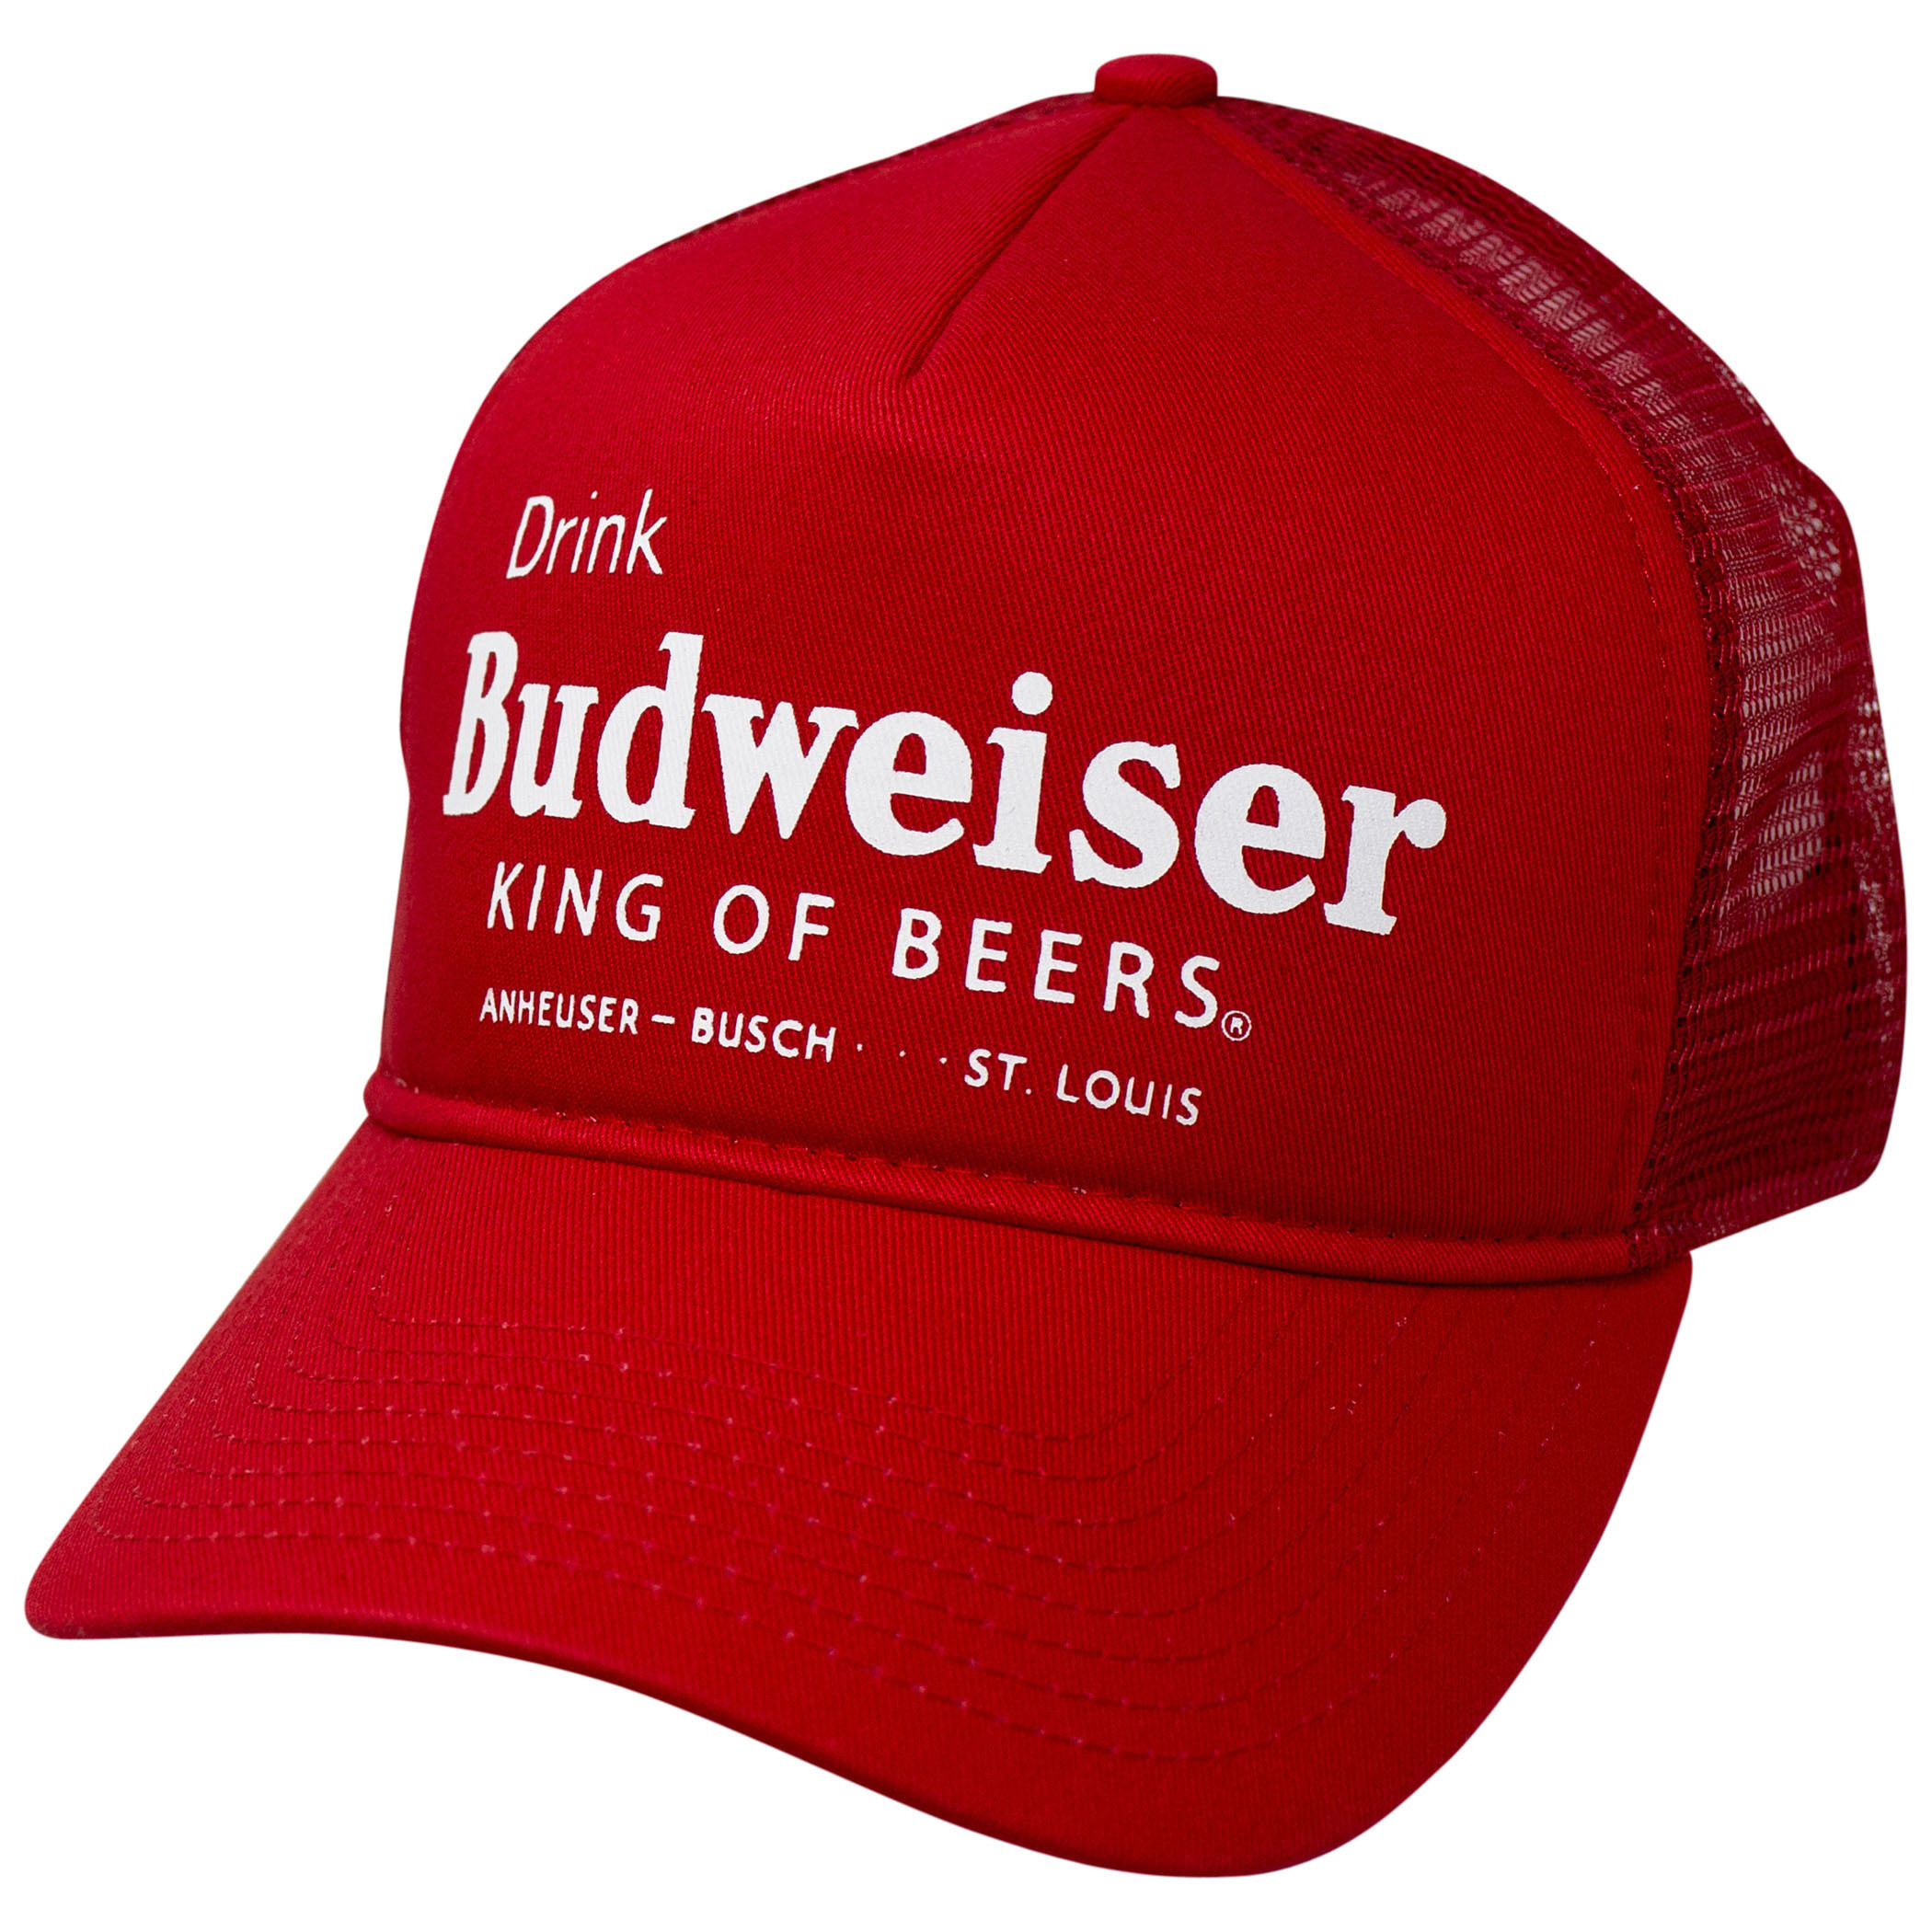 Budweiser King Of Beers Trucker Hat